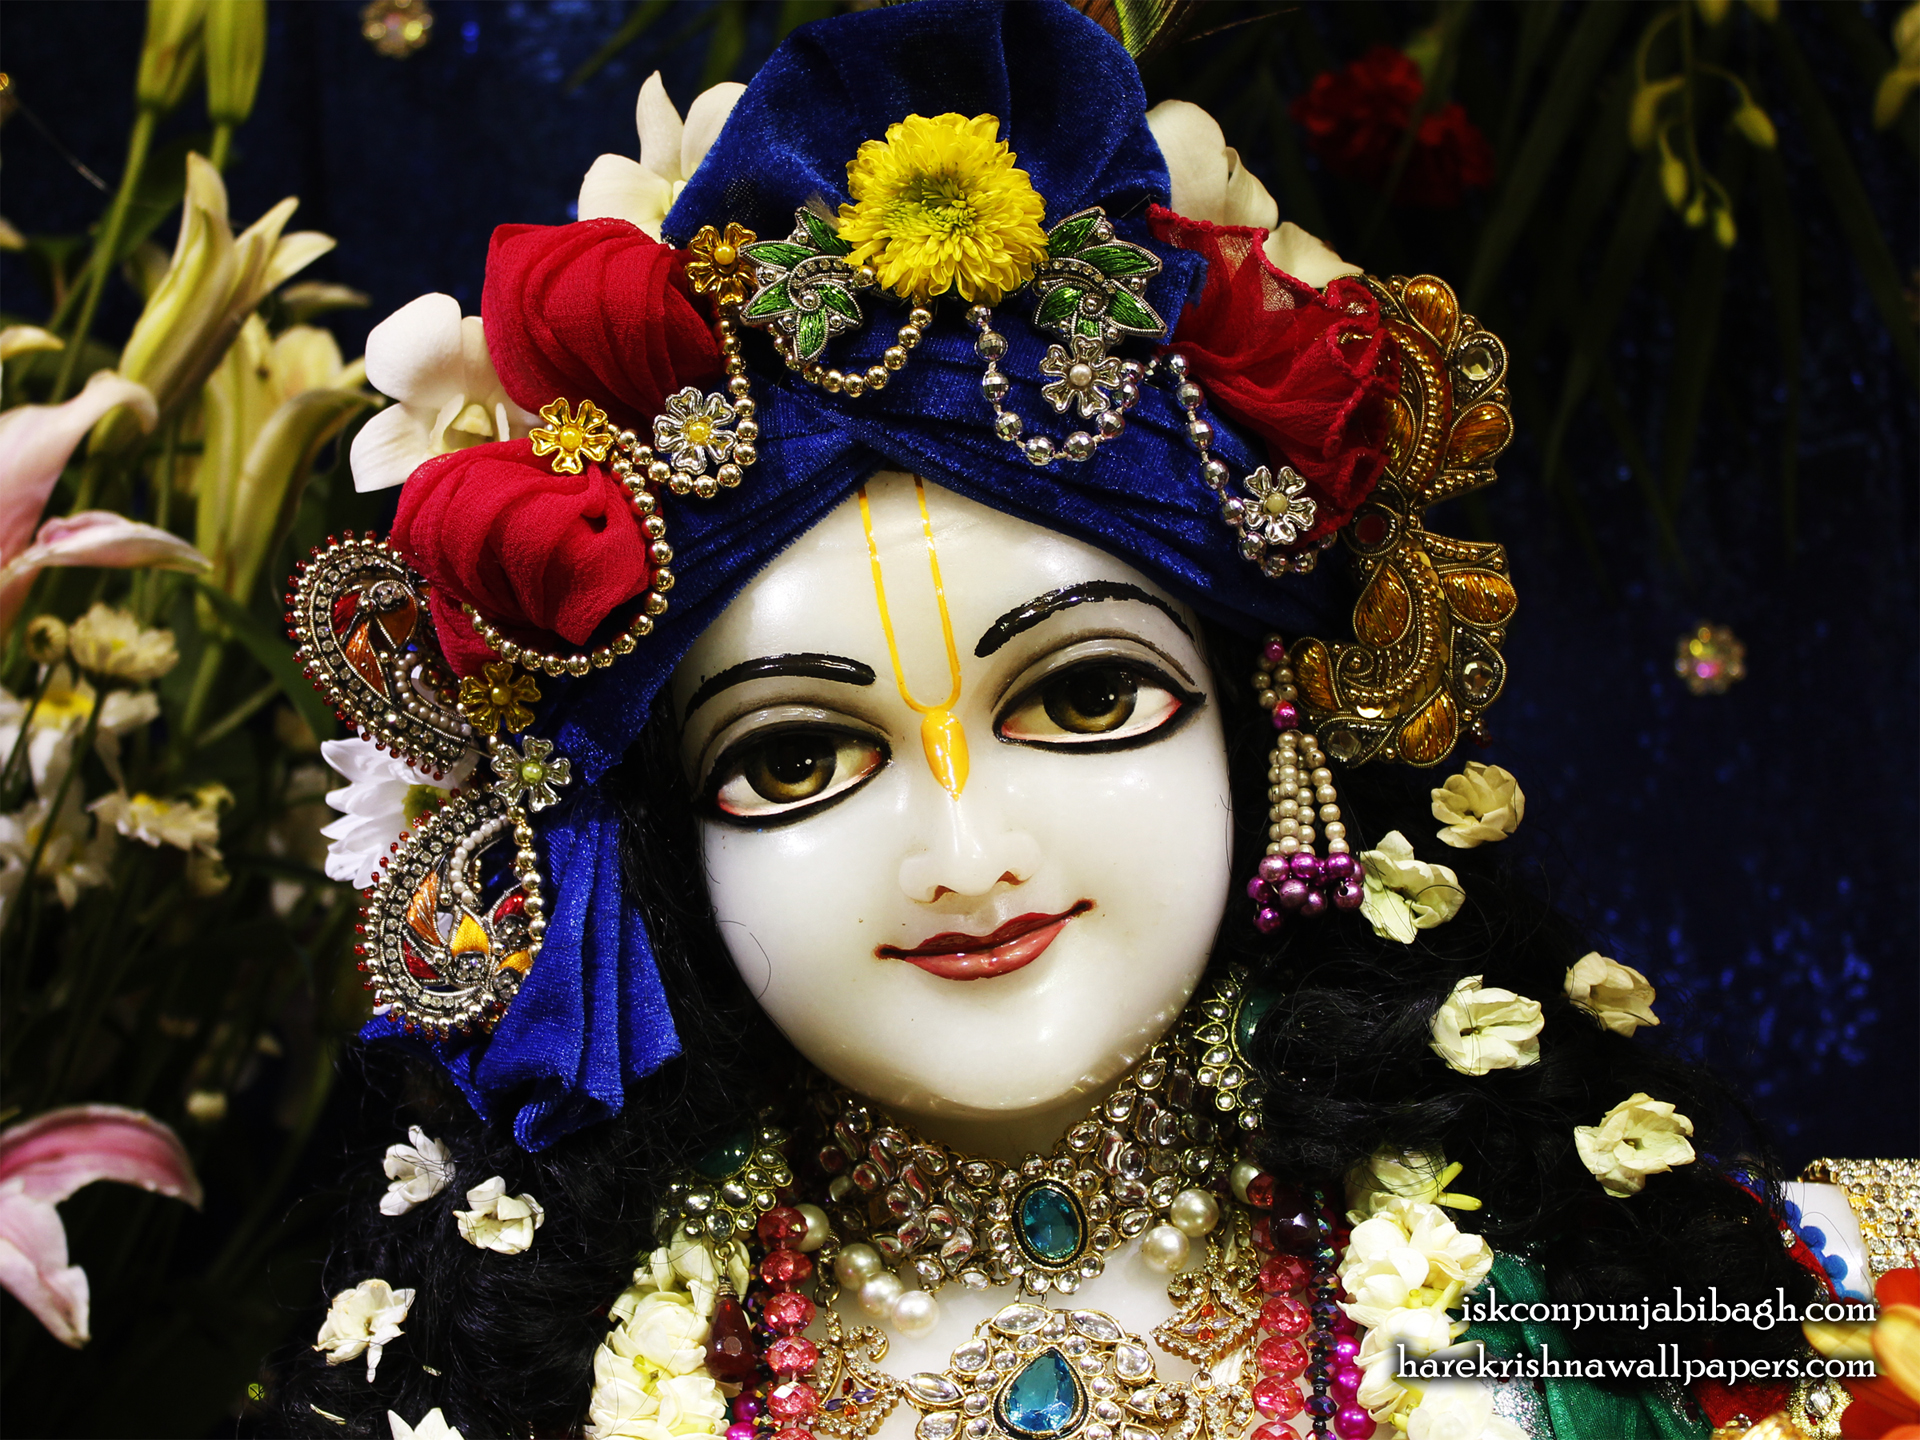 Sri Balaram Close up Wallpaper (004) Size 1920x1440 Download